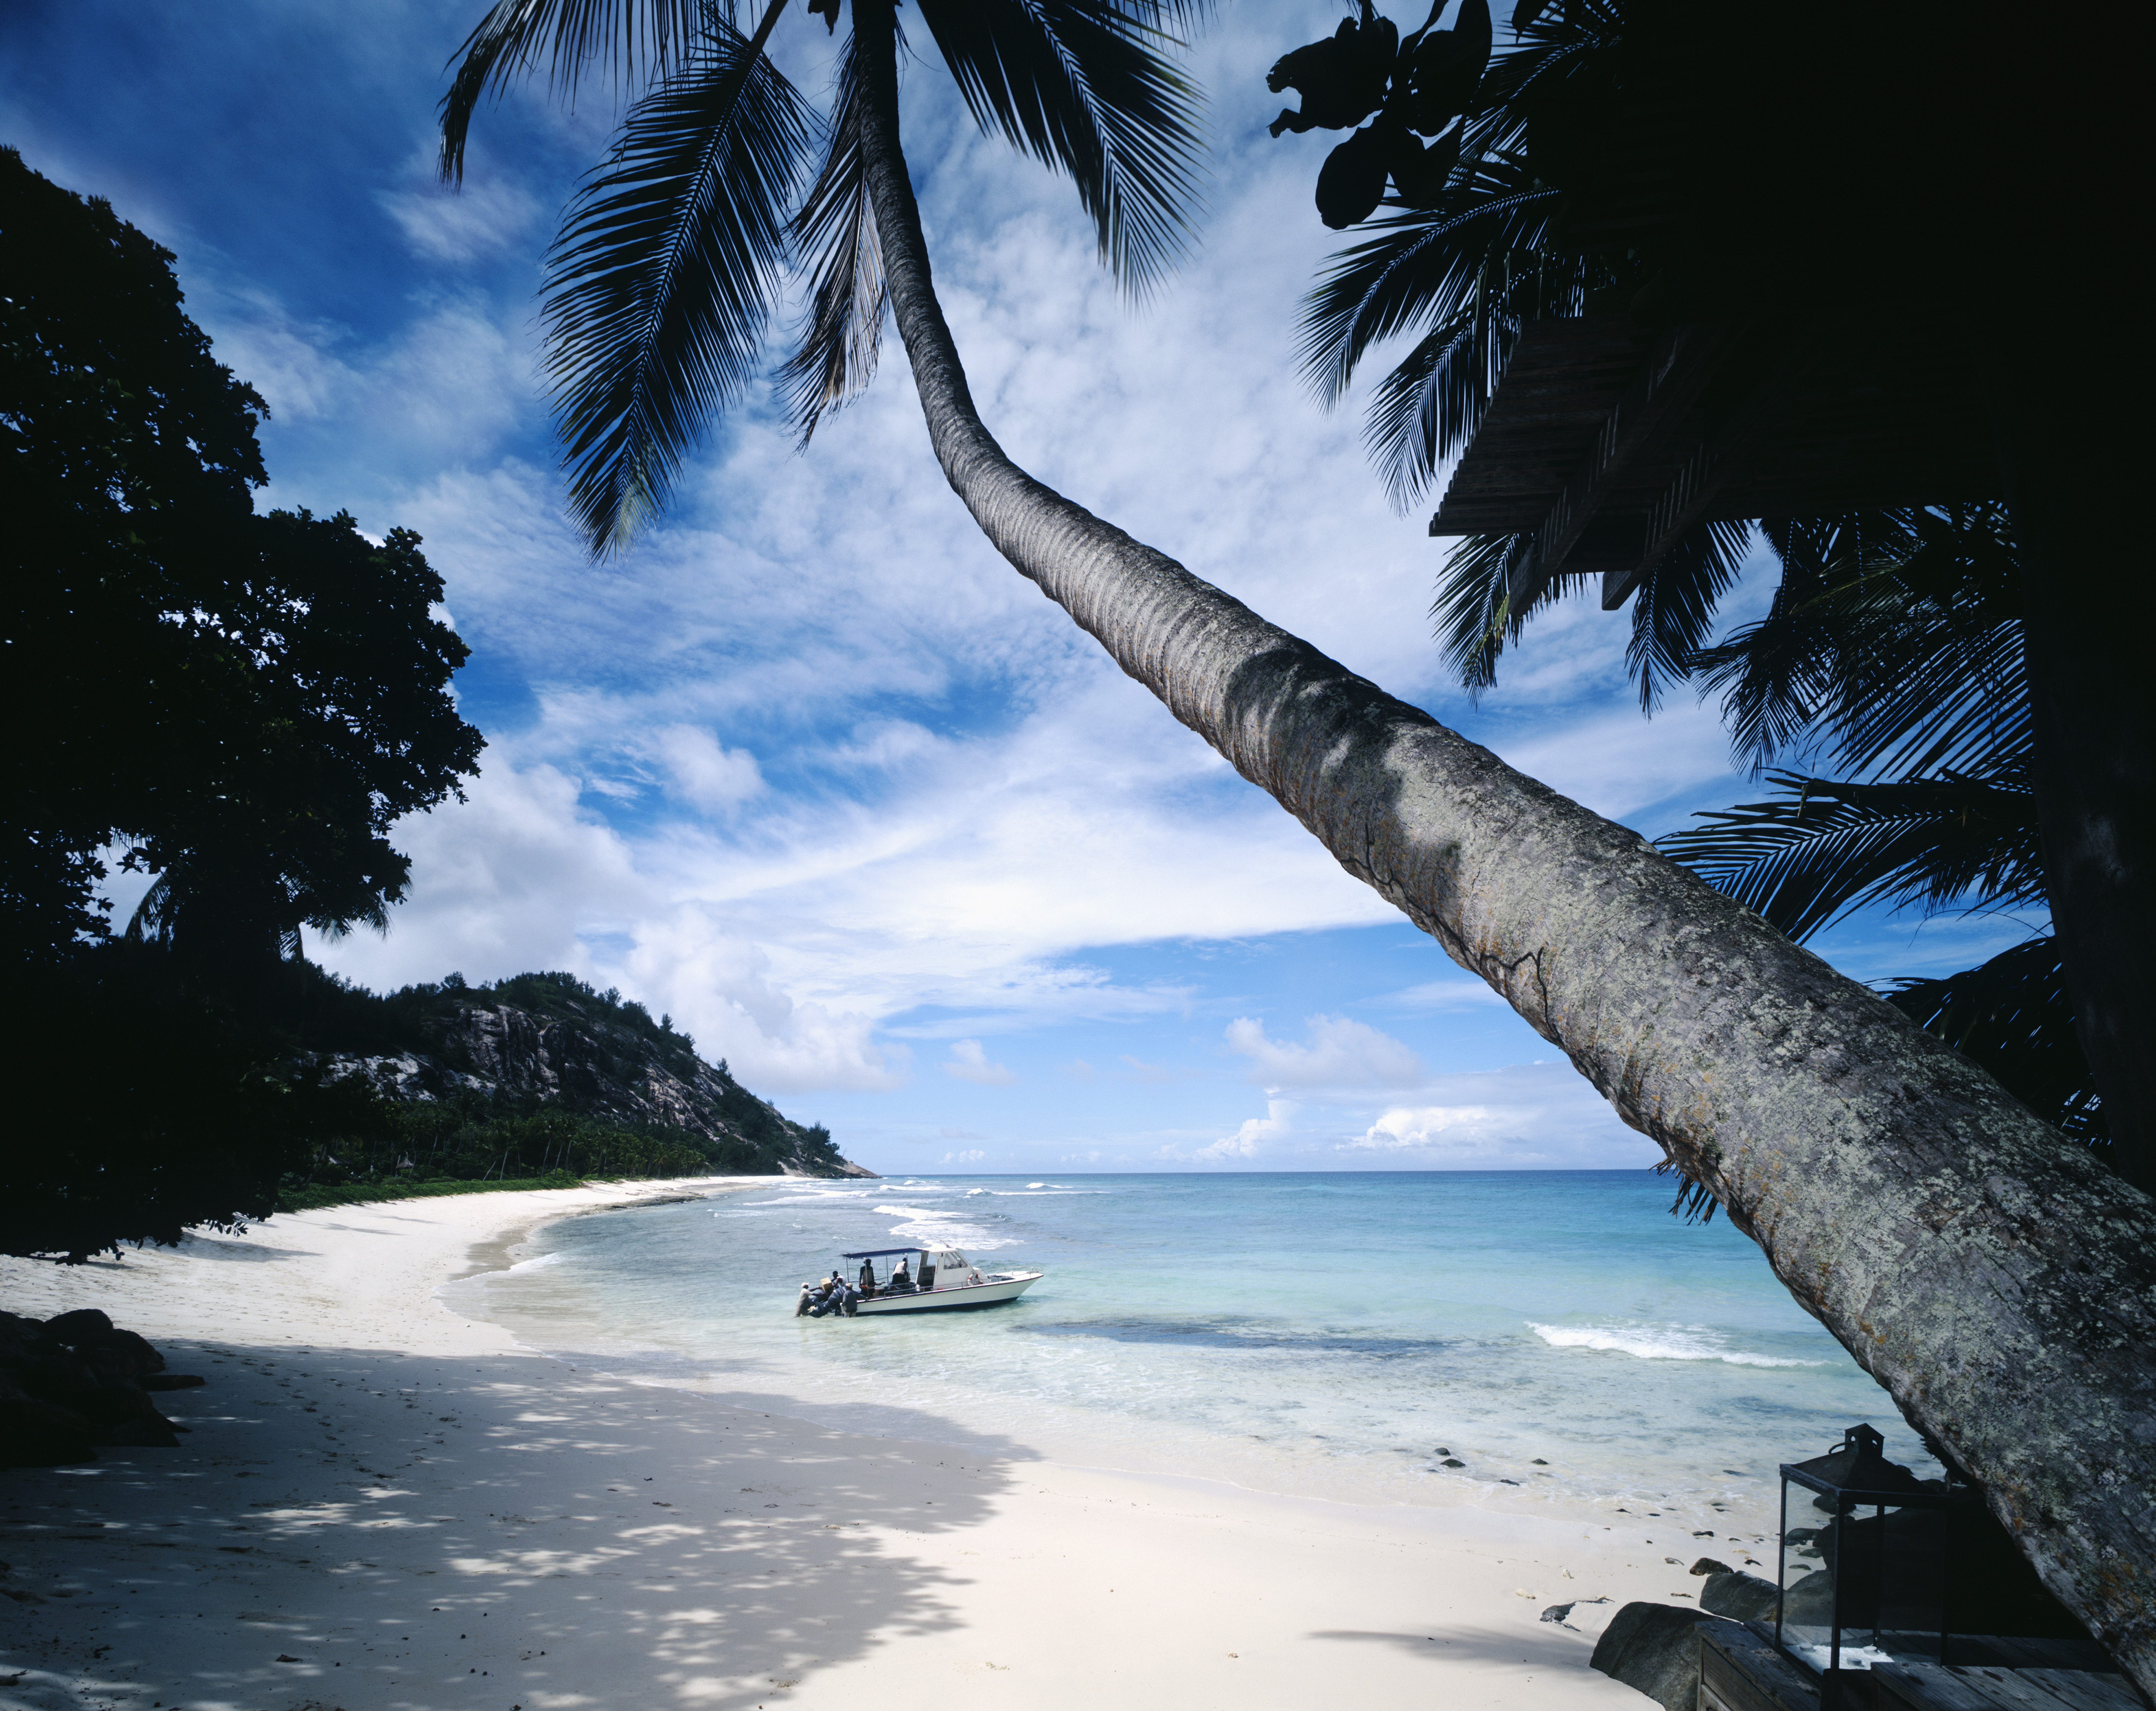 Fun Facts About Philippine Travel & Tourism